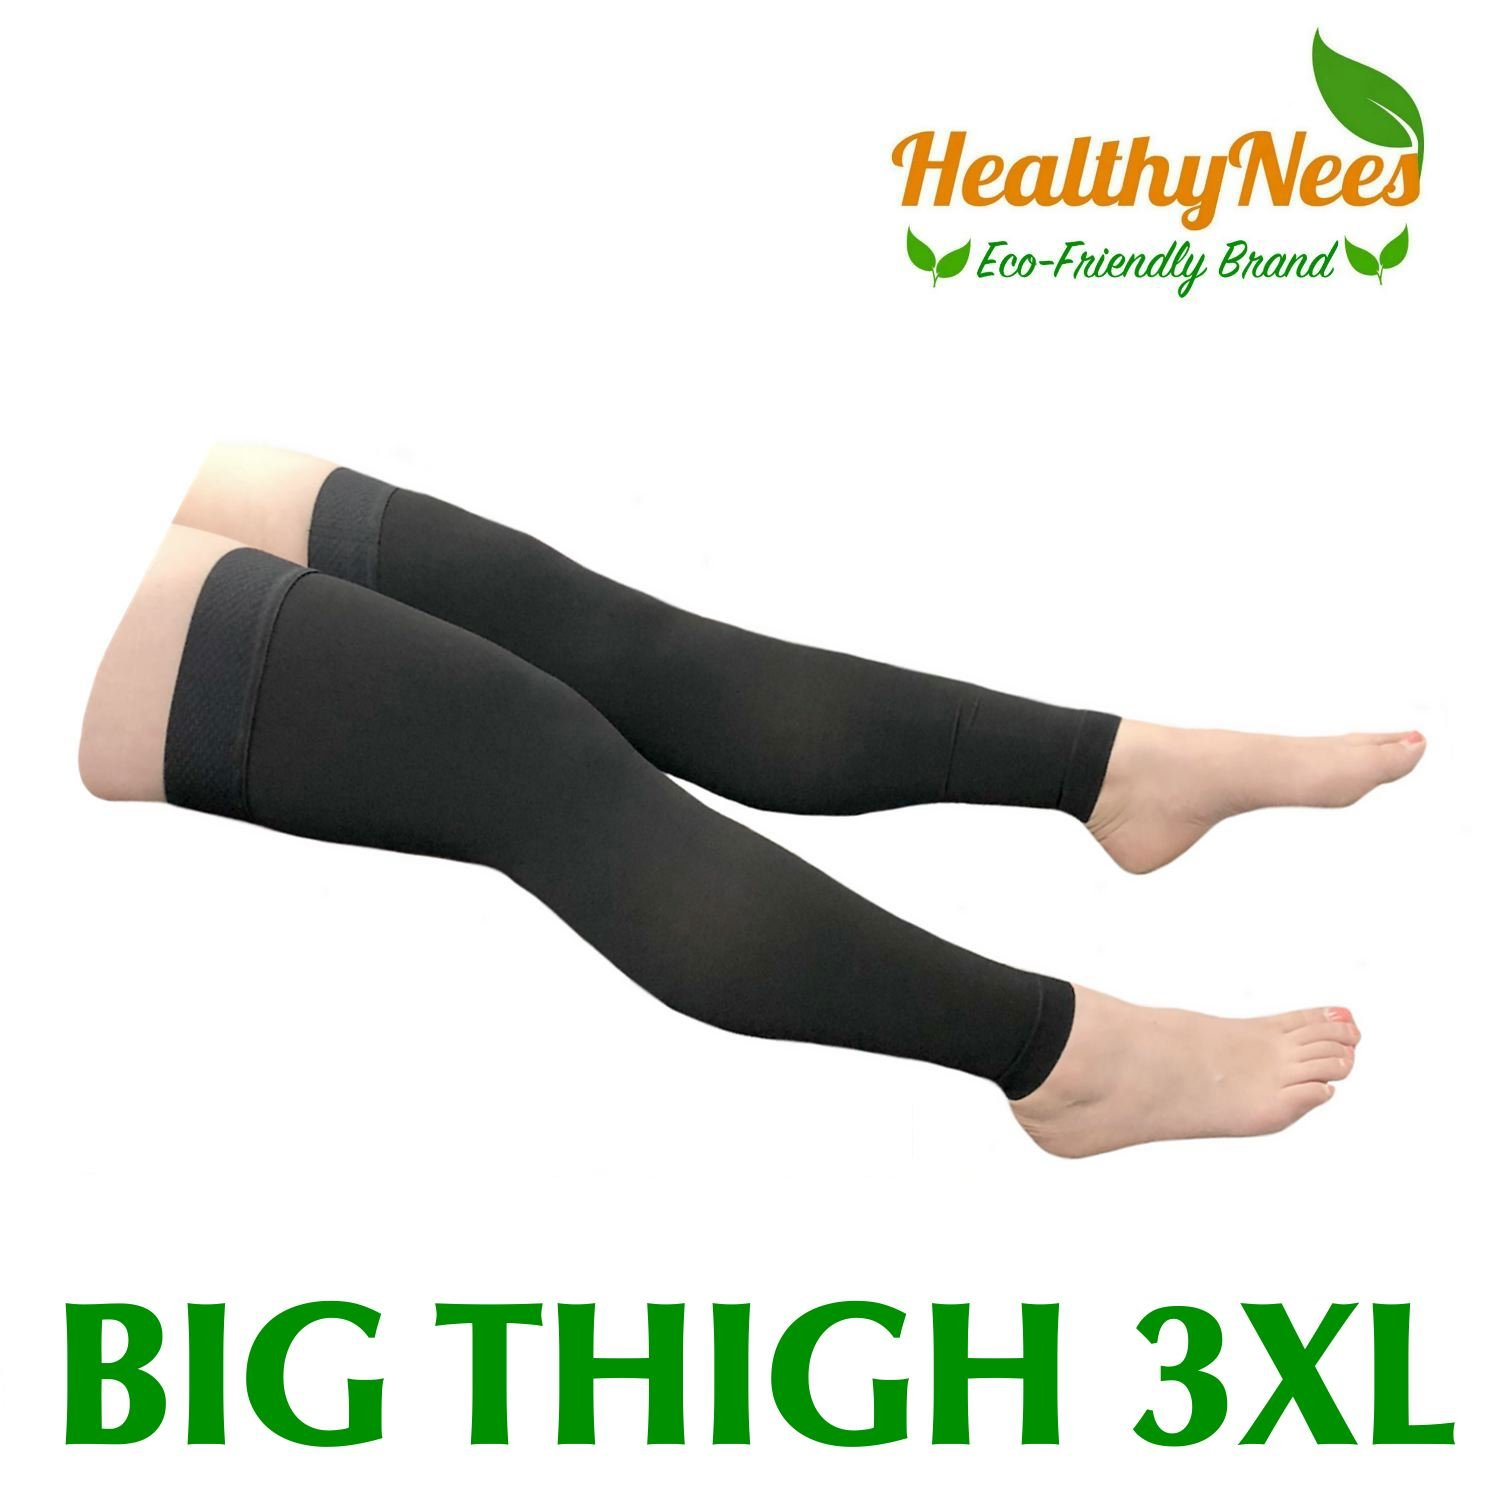 HealthyNees Thigh Sleeve 20-30 mmHg Medical Compression Plus Size Extra Big Wide Above Knee High Length Circulation Thick Calf Leg Shin Sleeve (Black, Big Thigh 3XL)